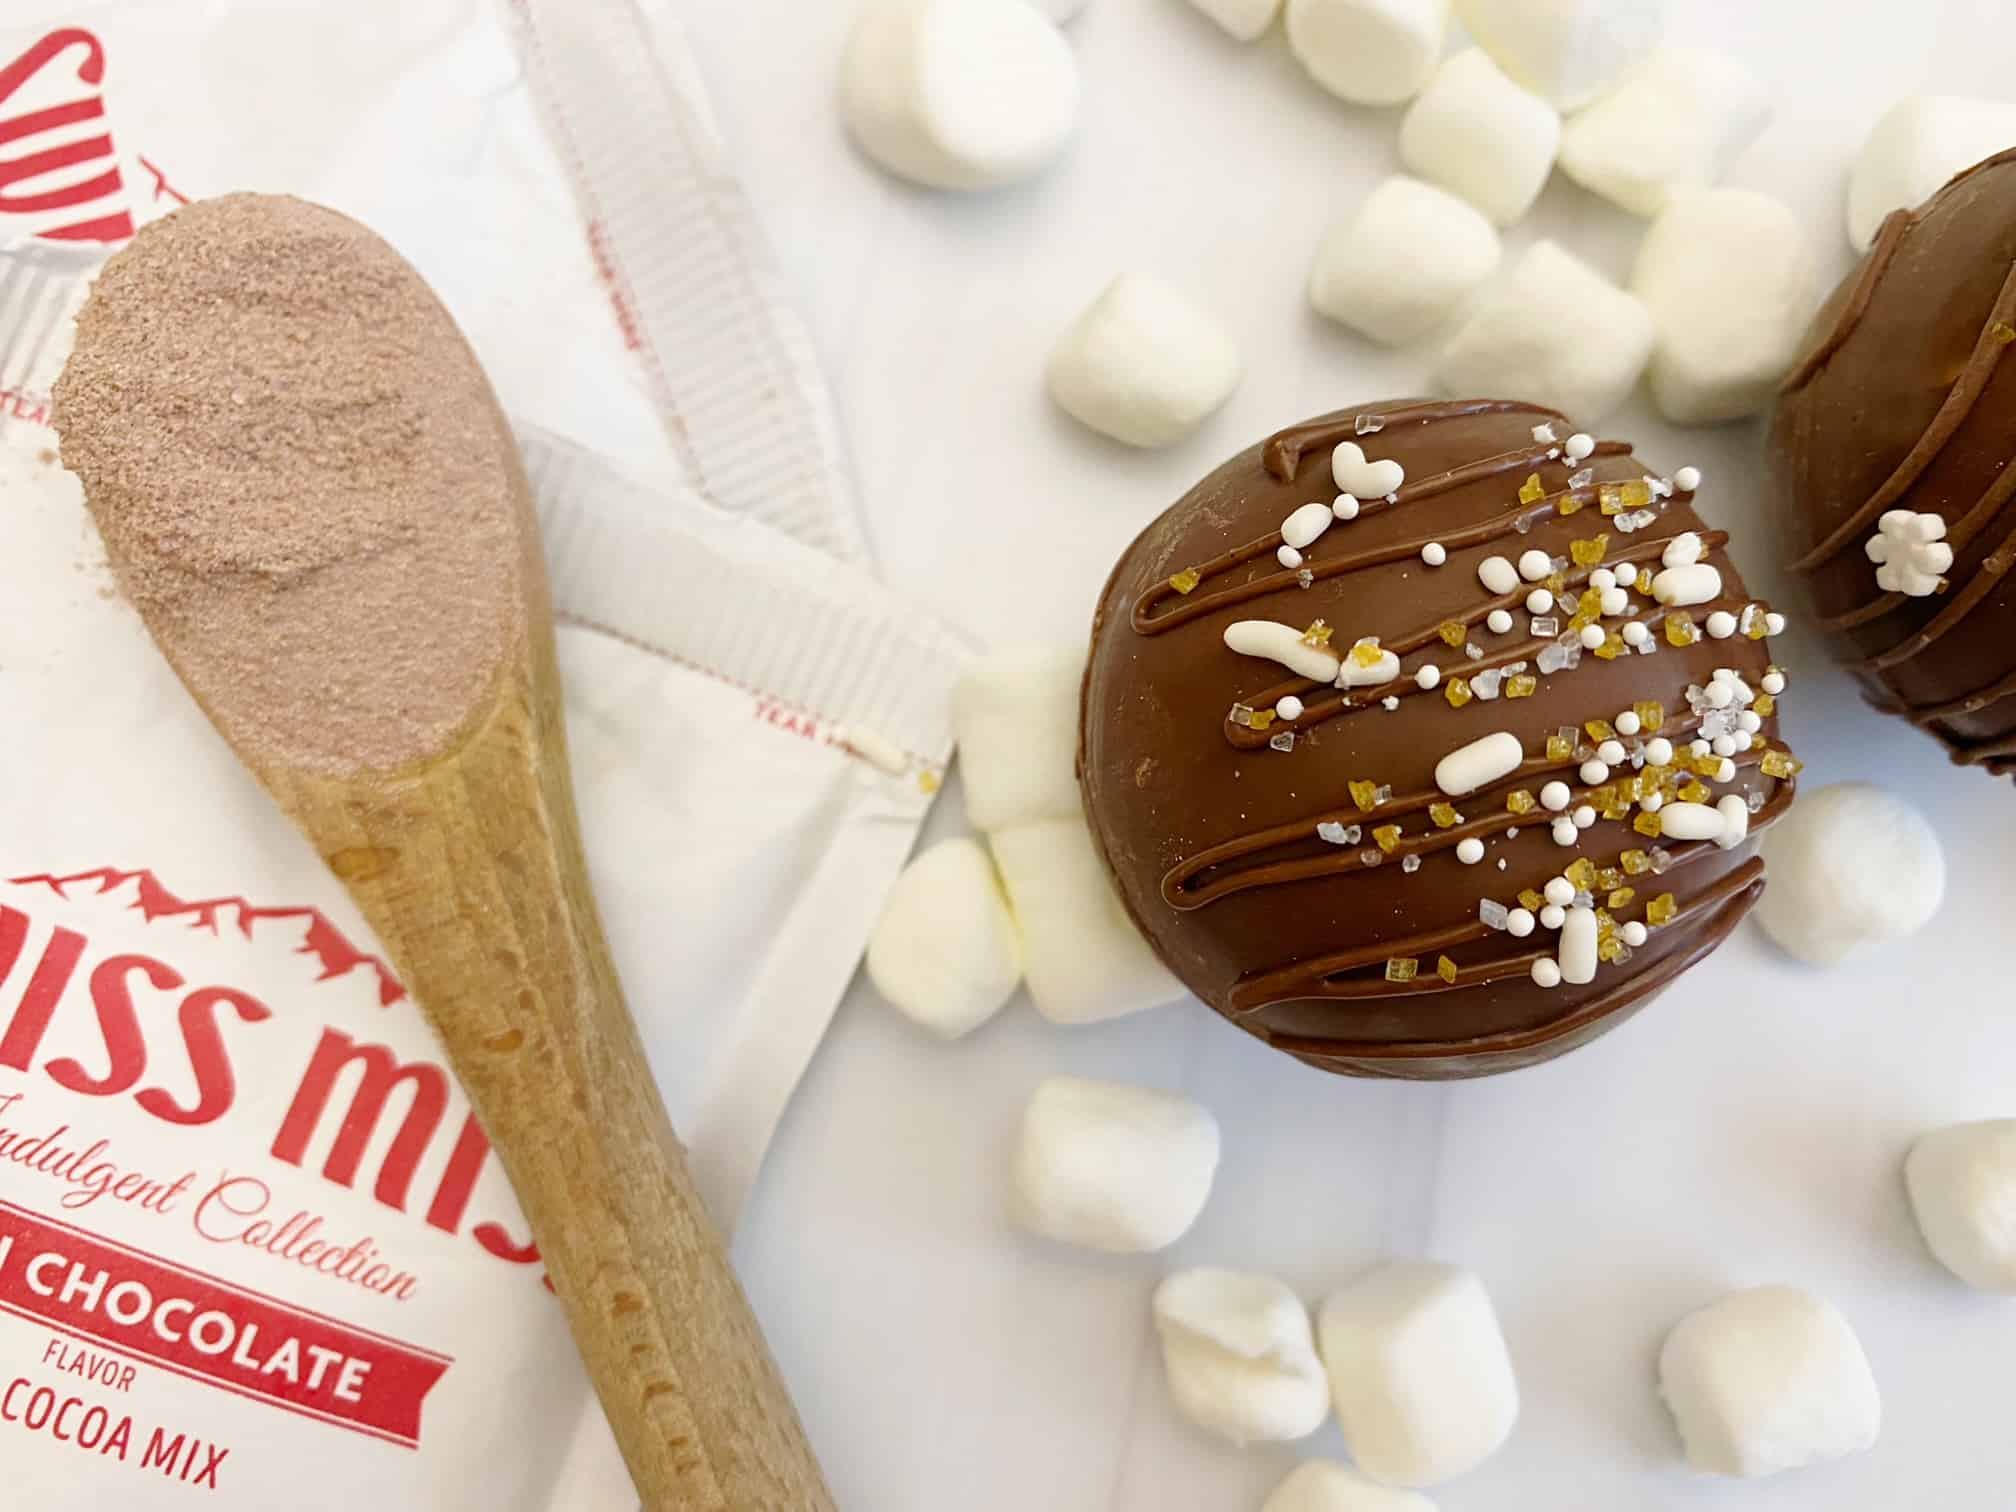 package swiss miss, wooden spoon, marshmallow, hot cocoa bomb